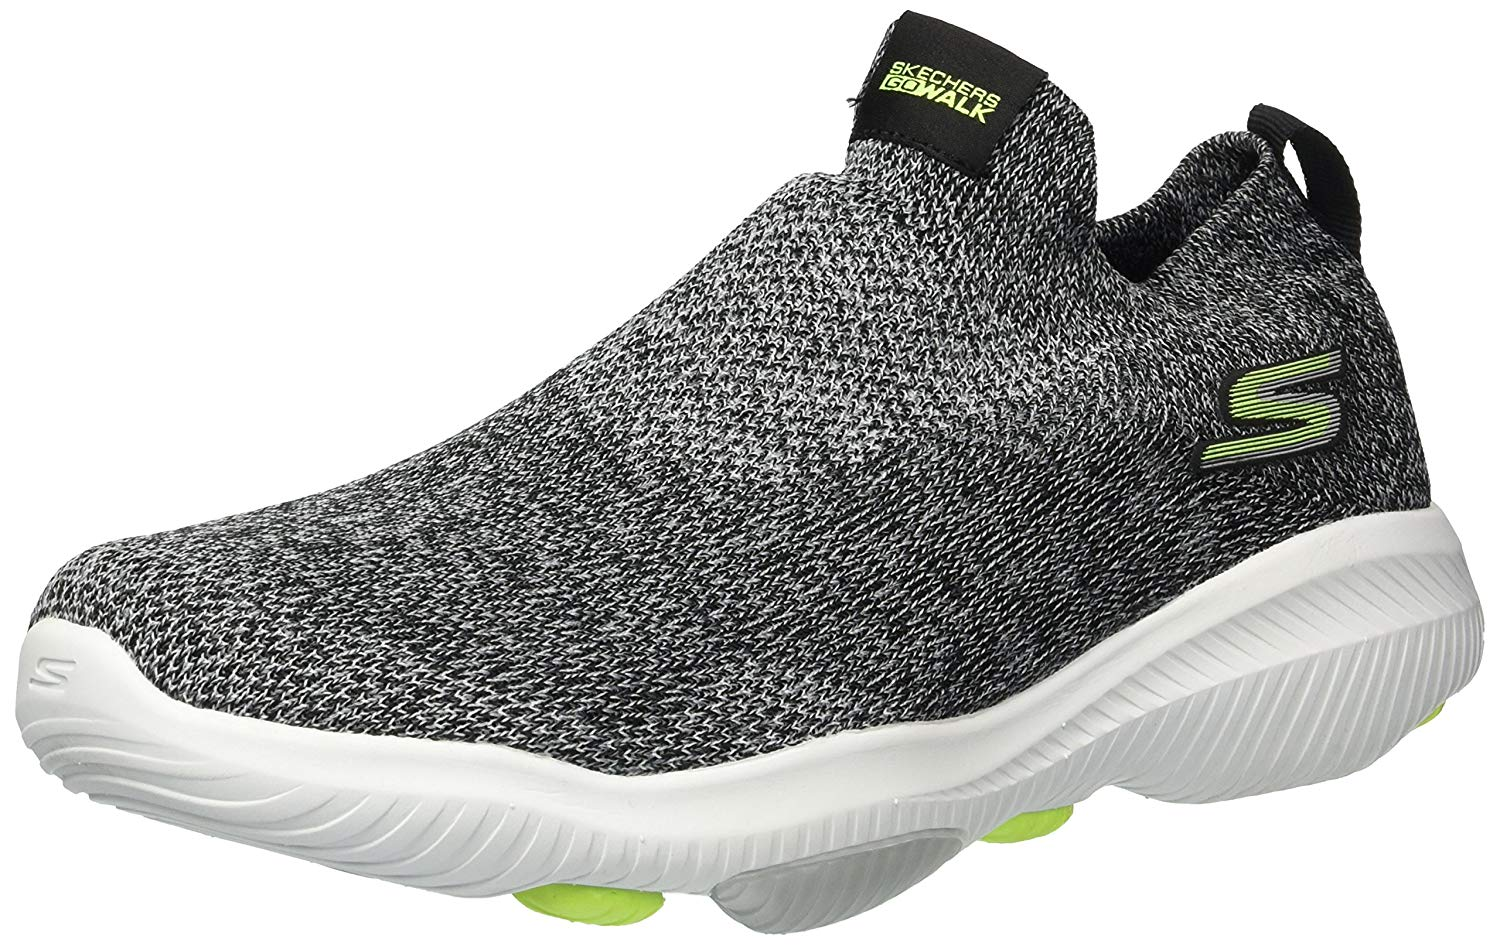 Skechers Men's Go Walk Revolution Ultra Jolt Sneaker